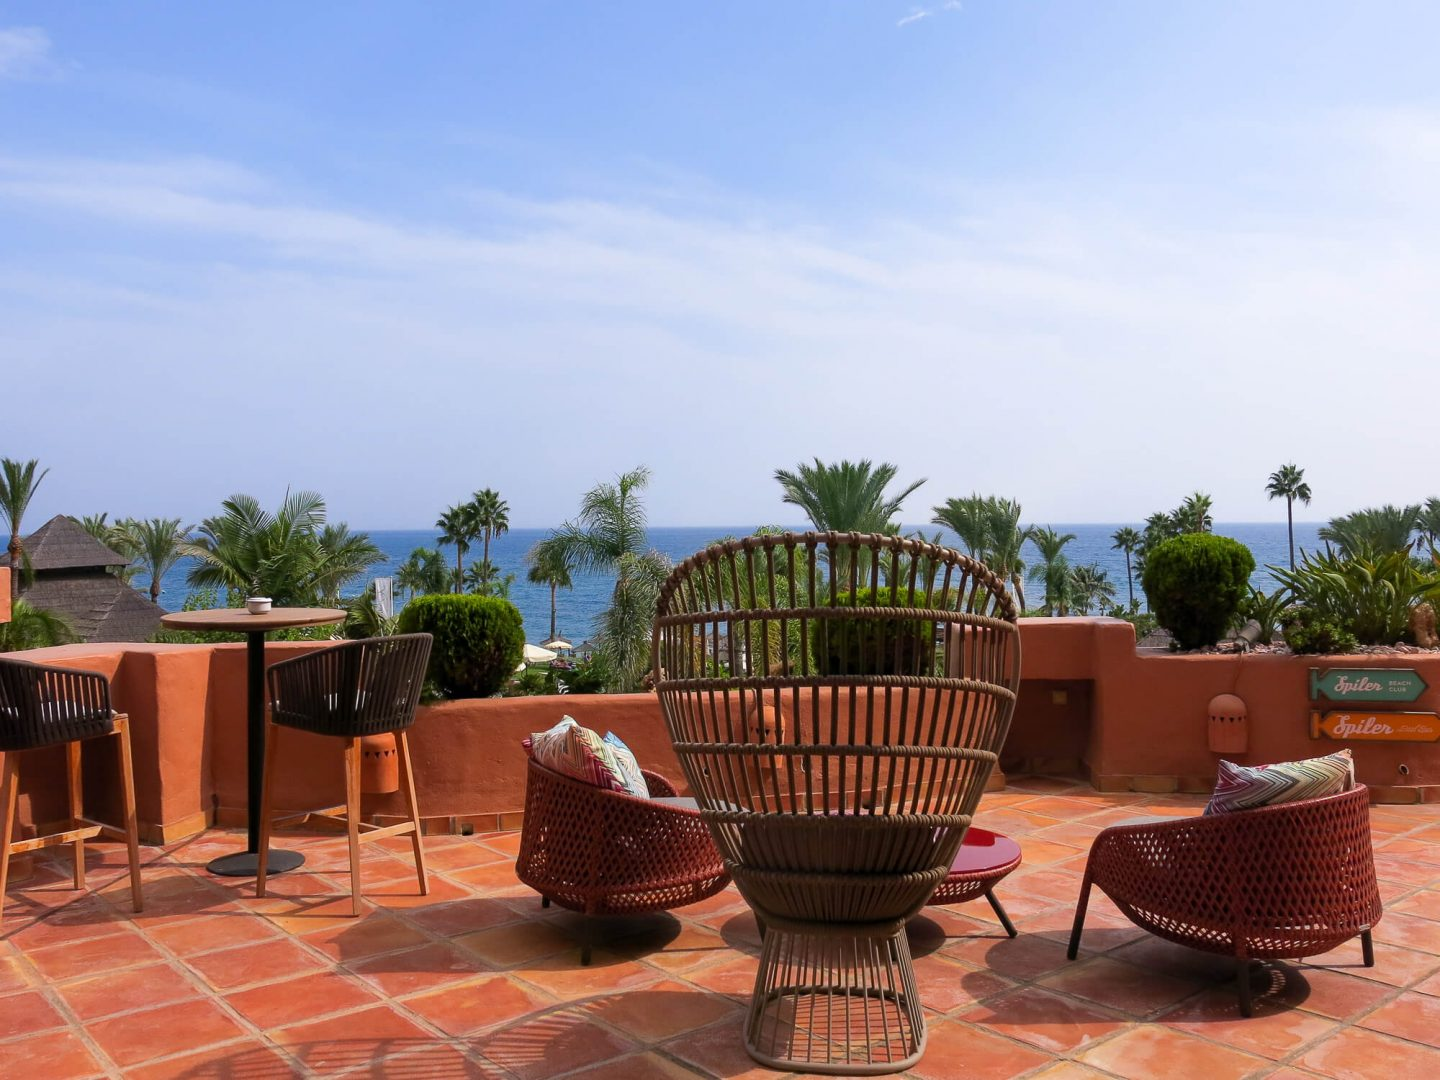 View of the sea from Kempinski Hotel Bahía, Spain. Luxury hotel near Marbella.